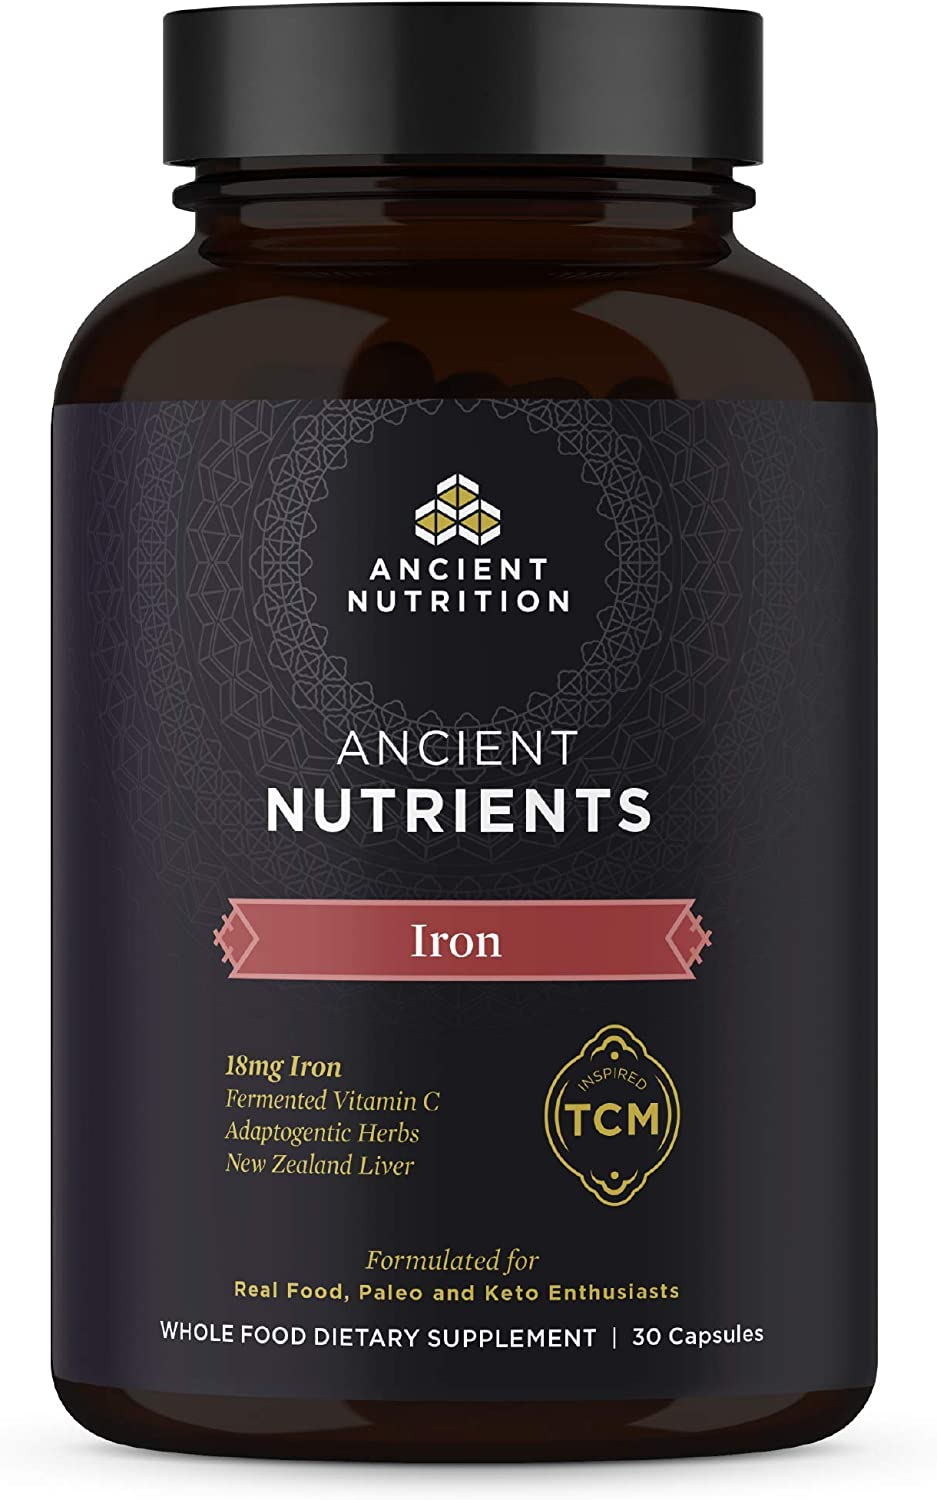 Iron Supplement Ranking TOP6 by Ancient Nutrition 18mg Seattle Mall Supports per Serving